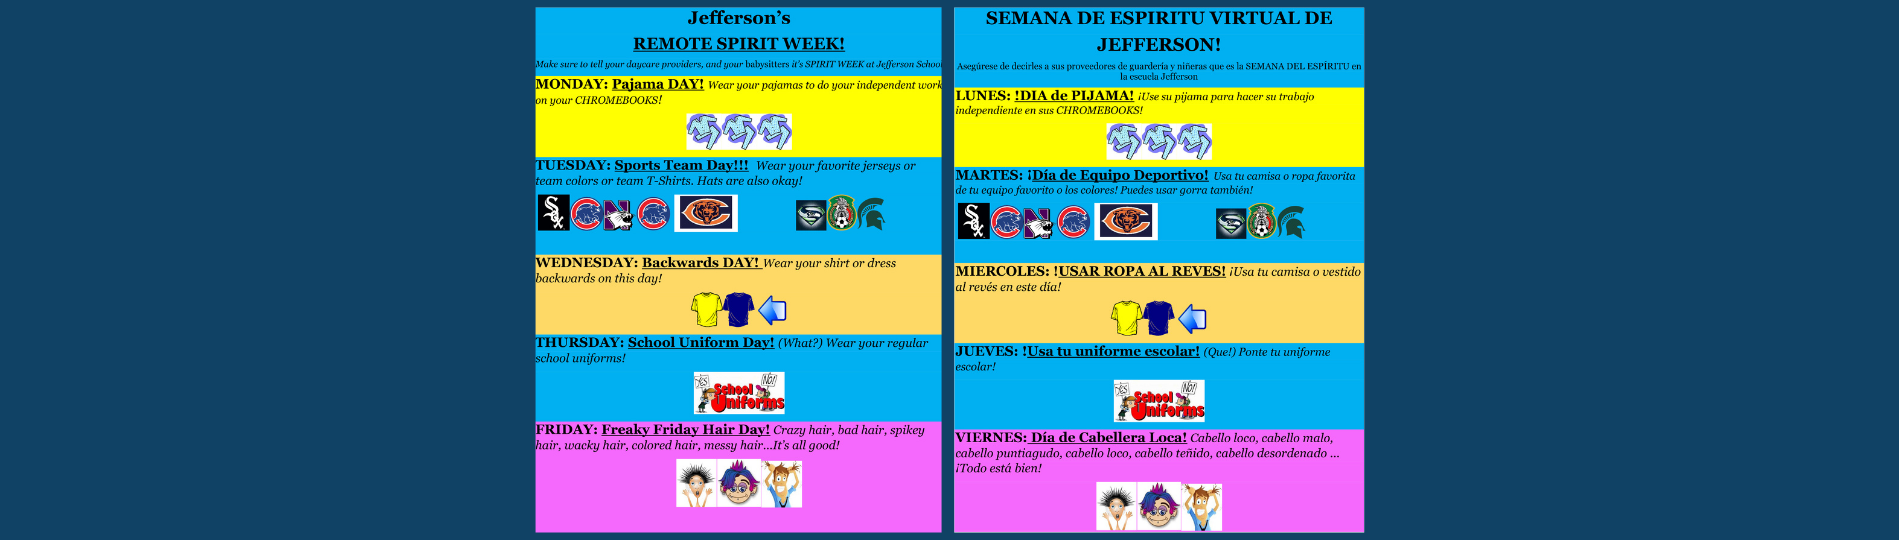 Jefferson's spirit week